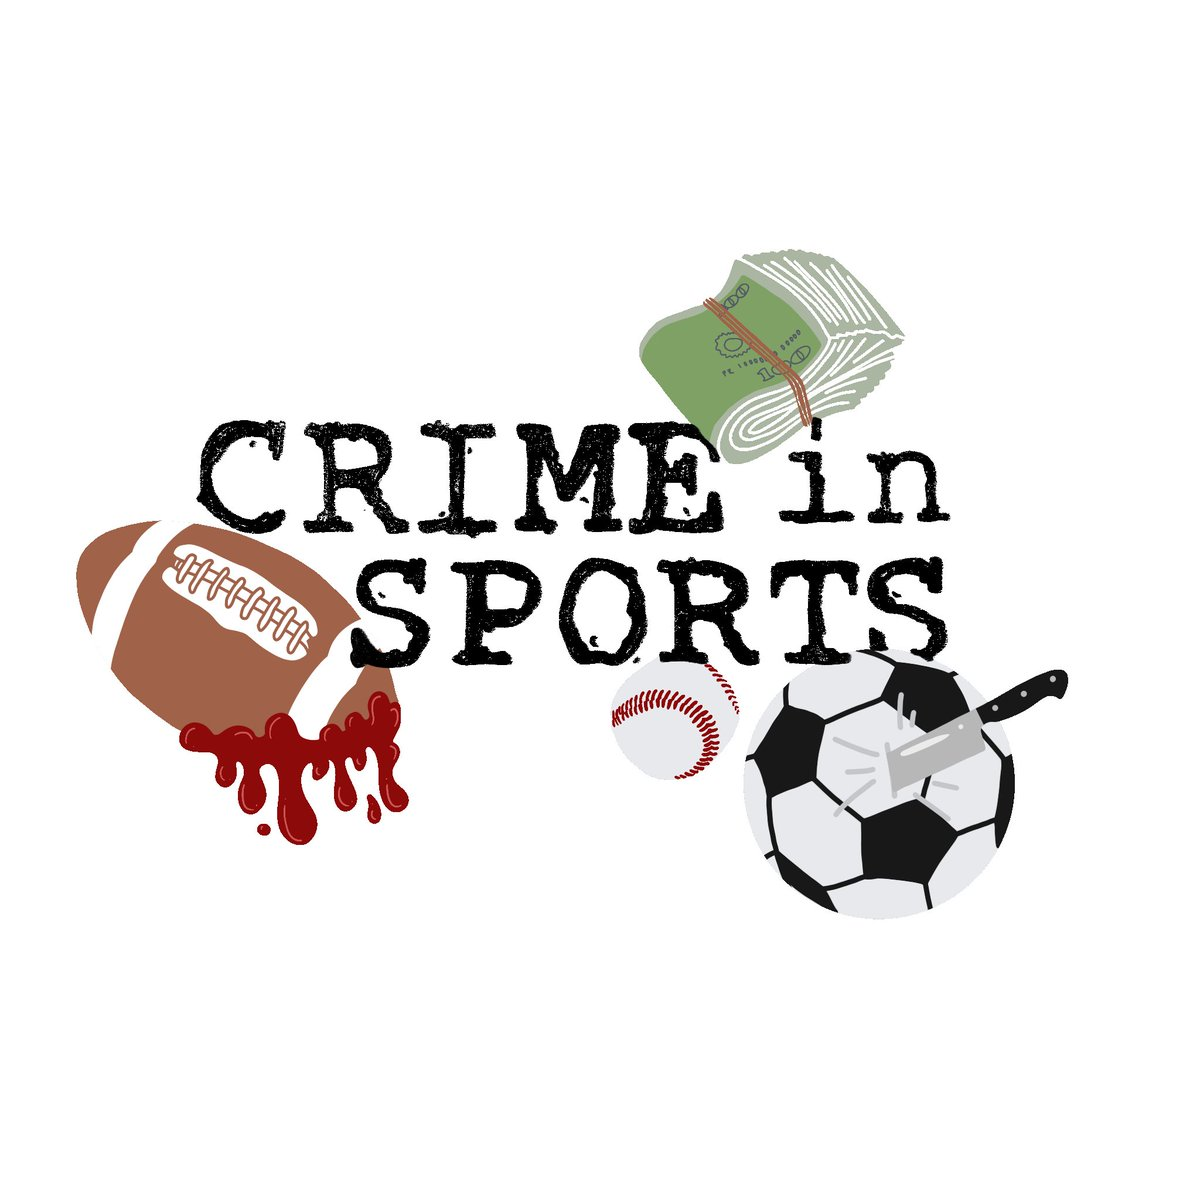 New GIFs up in Giphy! Search 'crimeinsports'